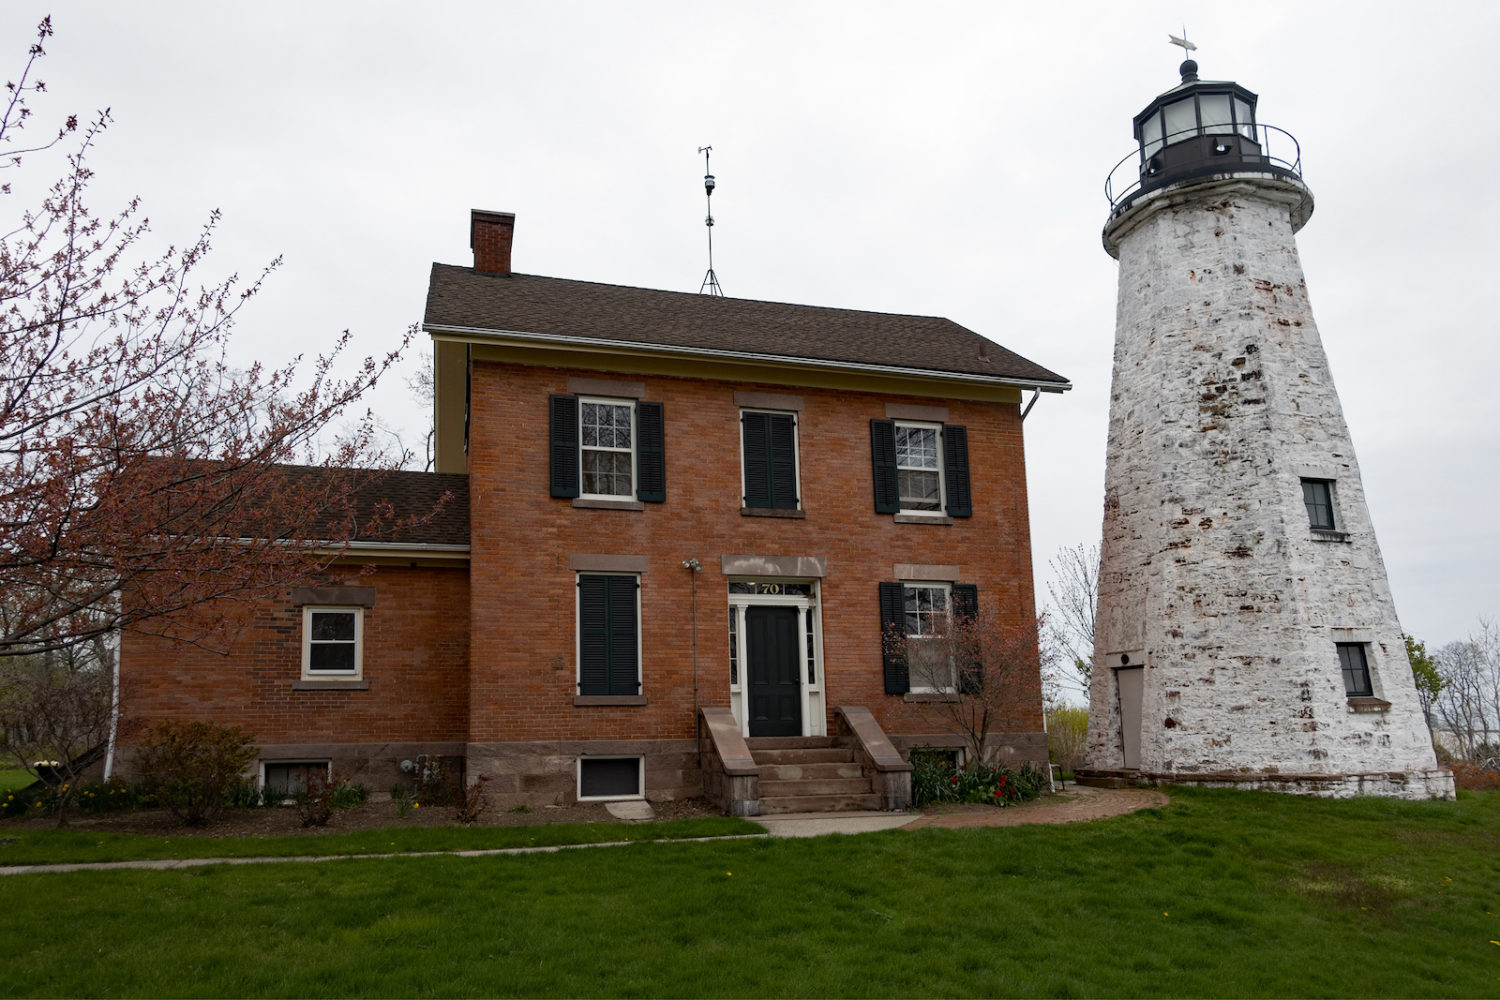 1822 Charlotte Genessee Lighthouse Rochester, New York